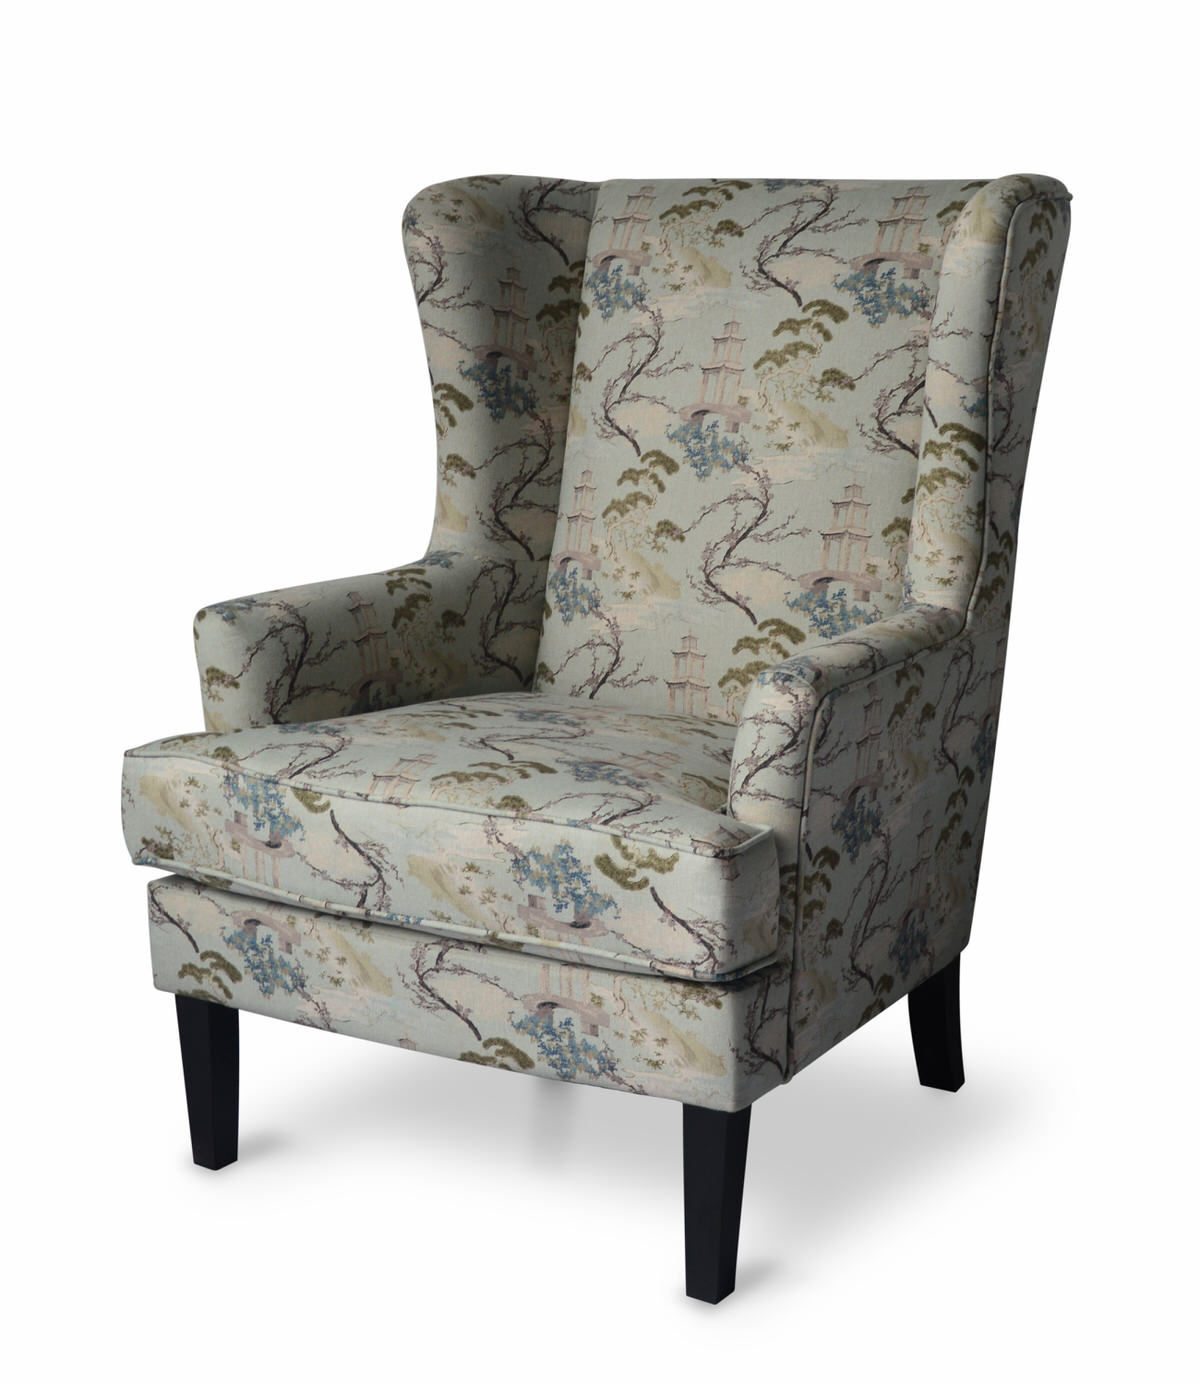 Haiku Sky Teal Wing Chair By Jofran Furniture